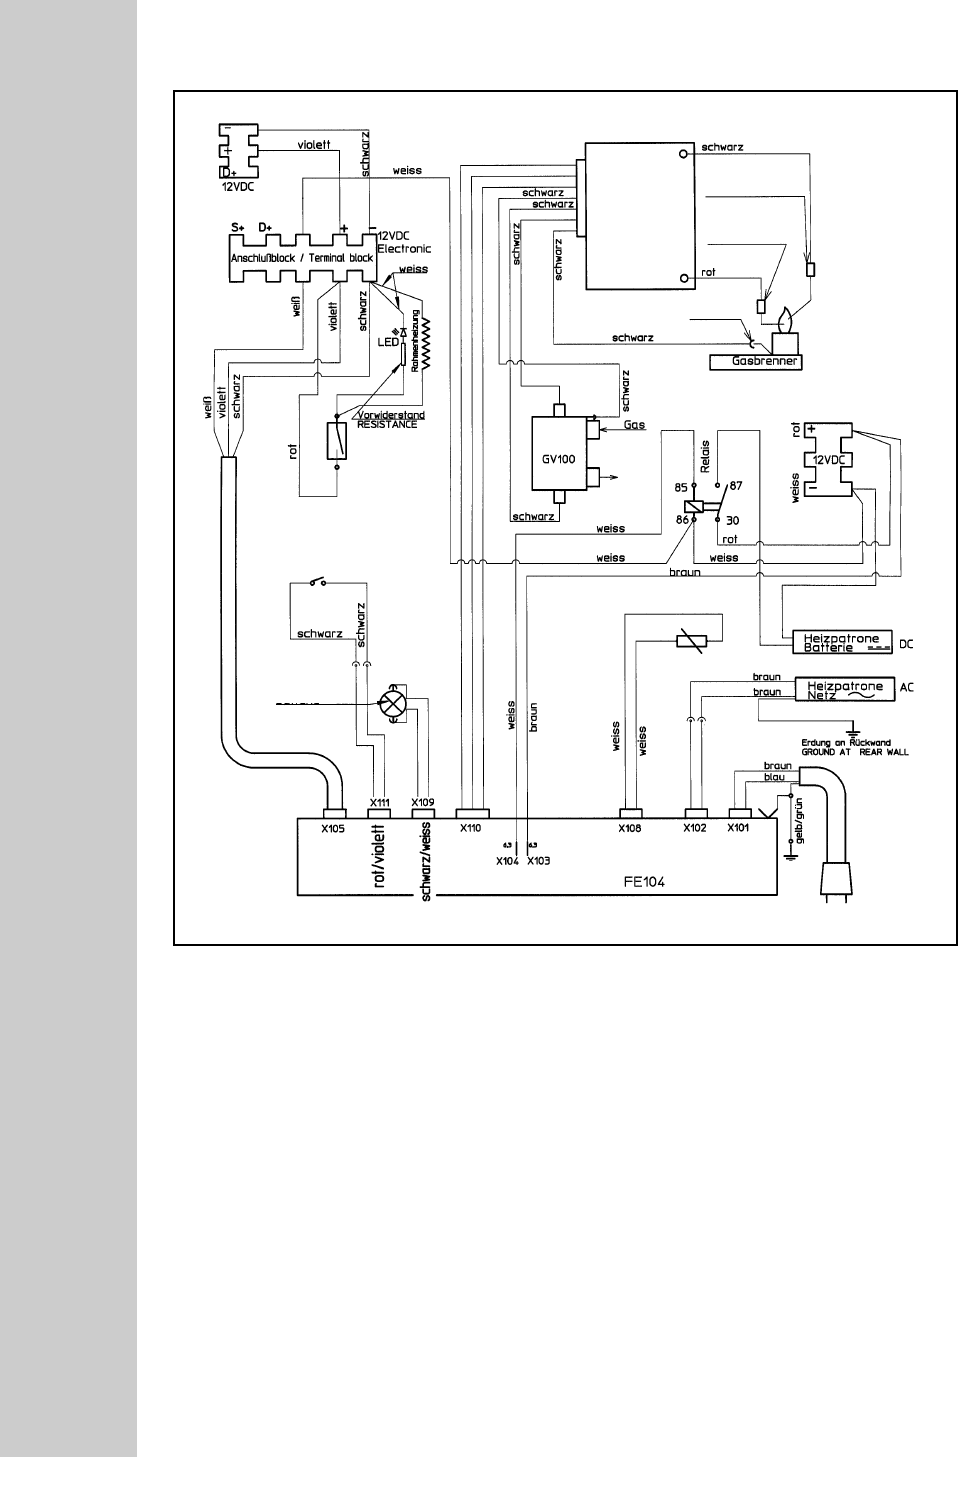 Page 27 of dometic refrigerator rm 7605 l user guide wiring diagram asfbconference2016